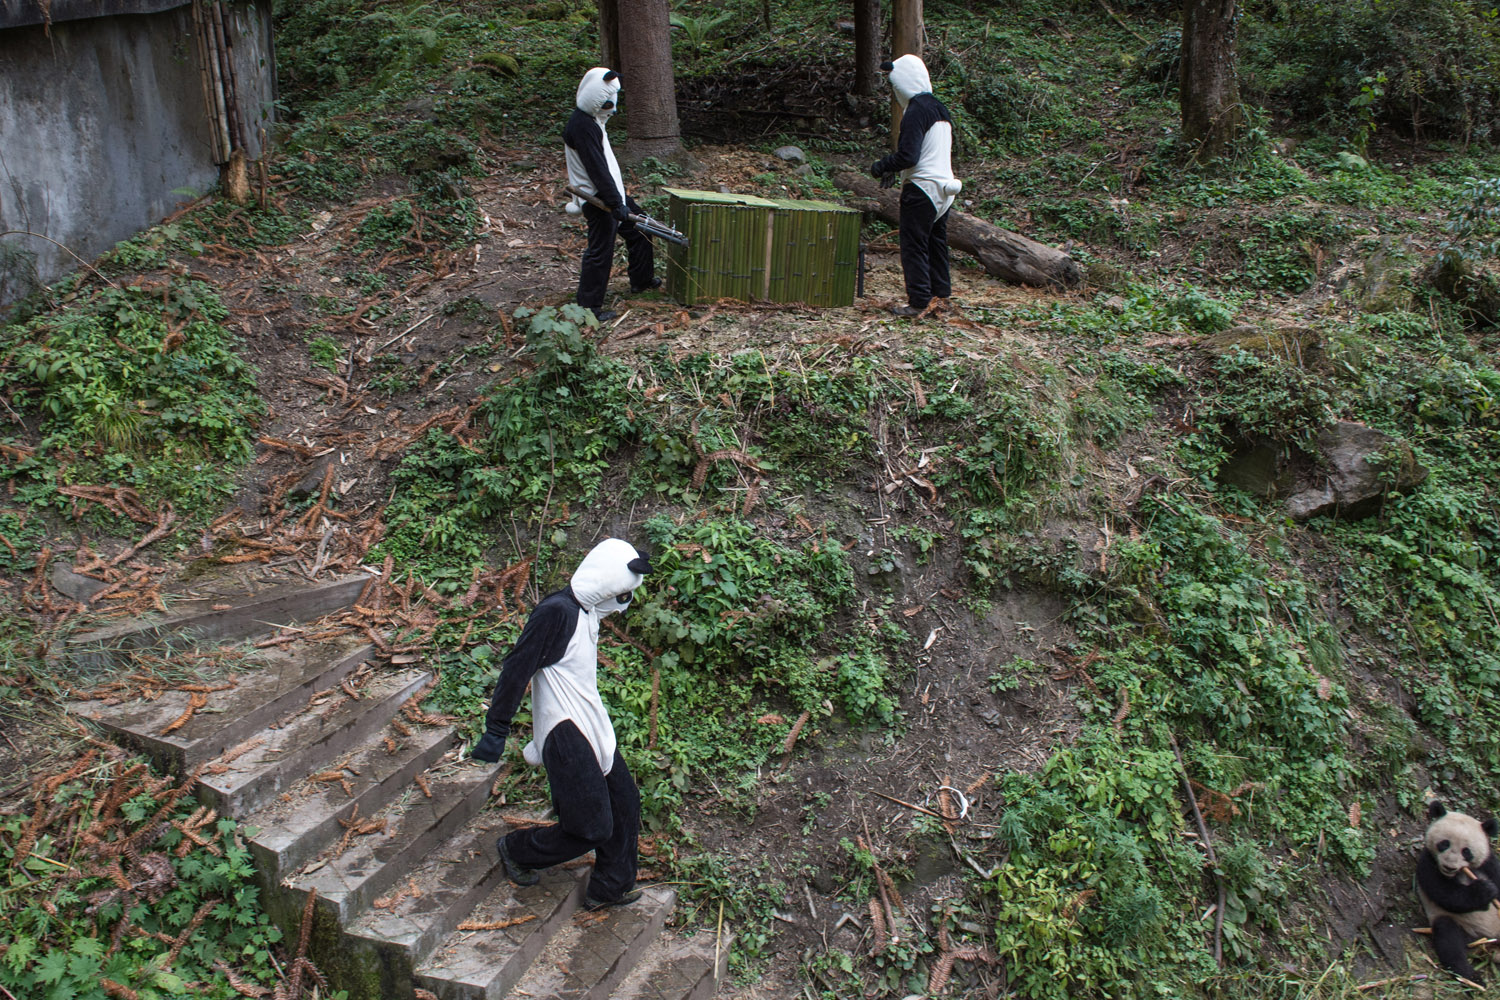 Panda keepers attempt to lure Yun Tao, into a box so they can move her to the next level of training in the Wolong National Nature Reserve.